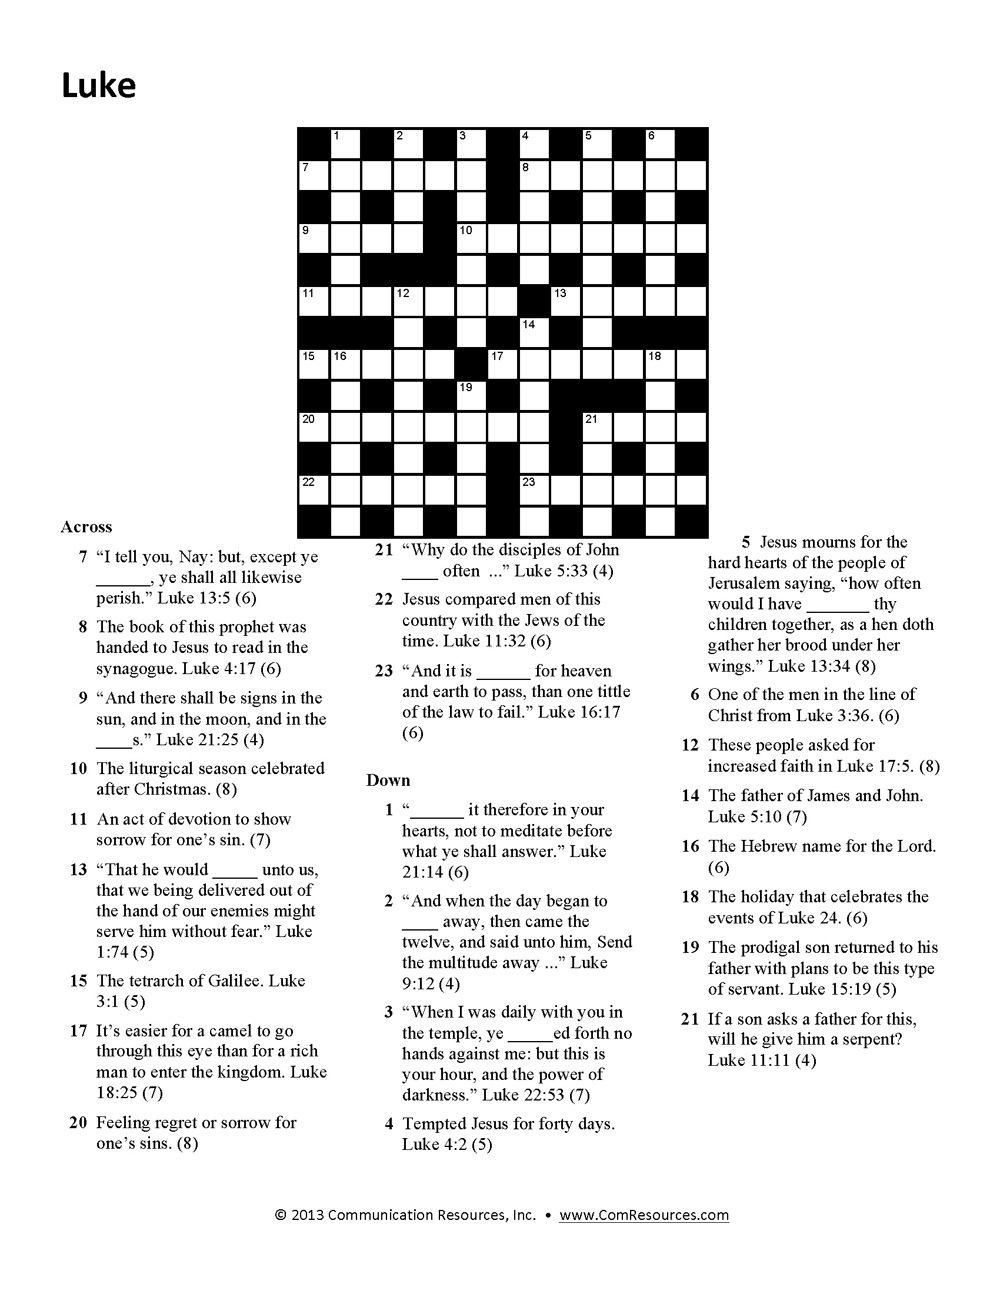 15 Fun Bible Crossword Puzzles | Kittybabylove - Printable Crossword Puzzles 2013